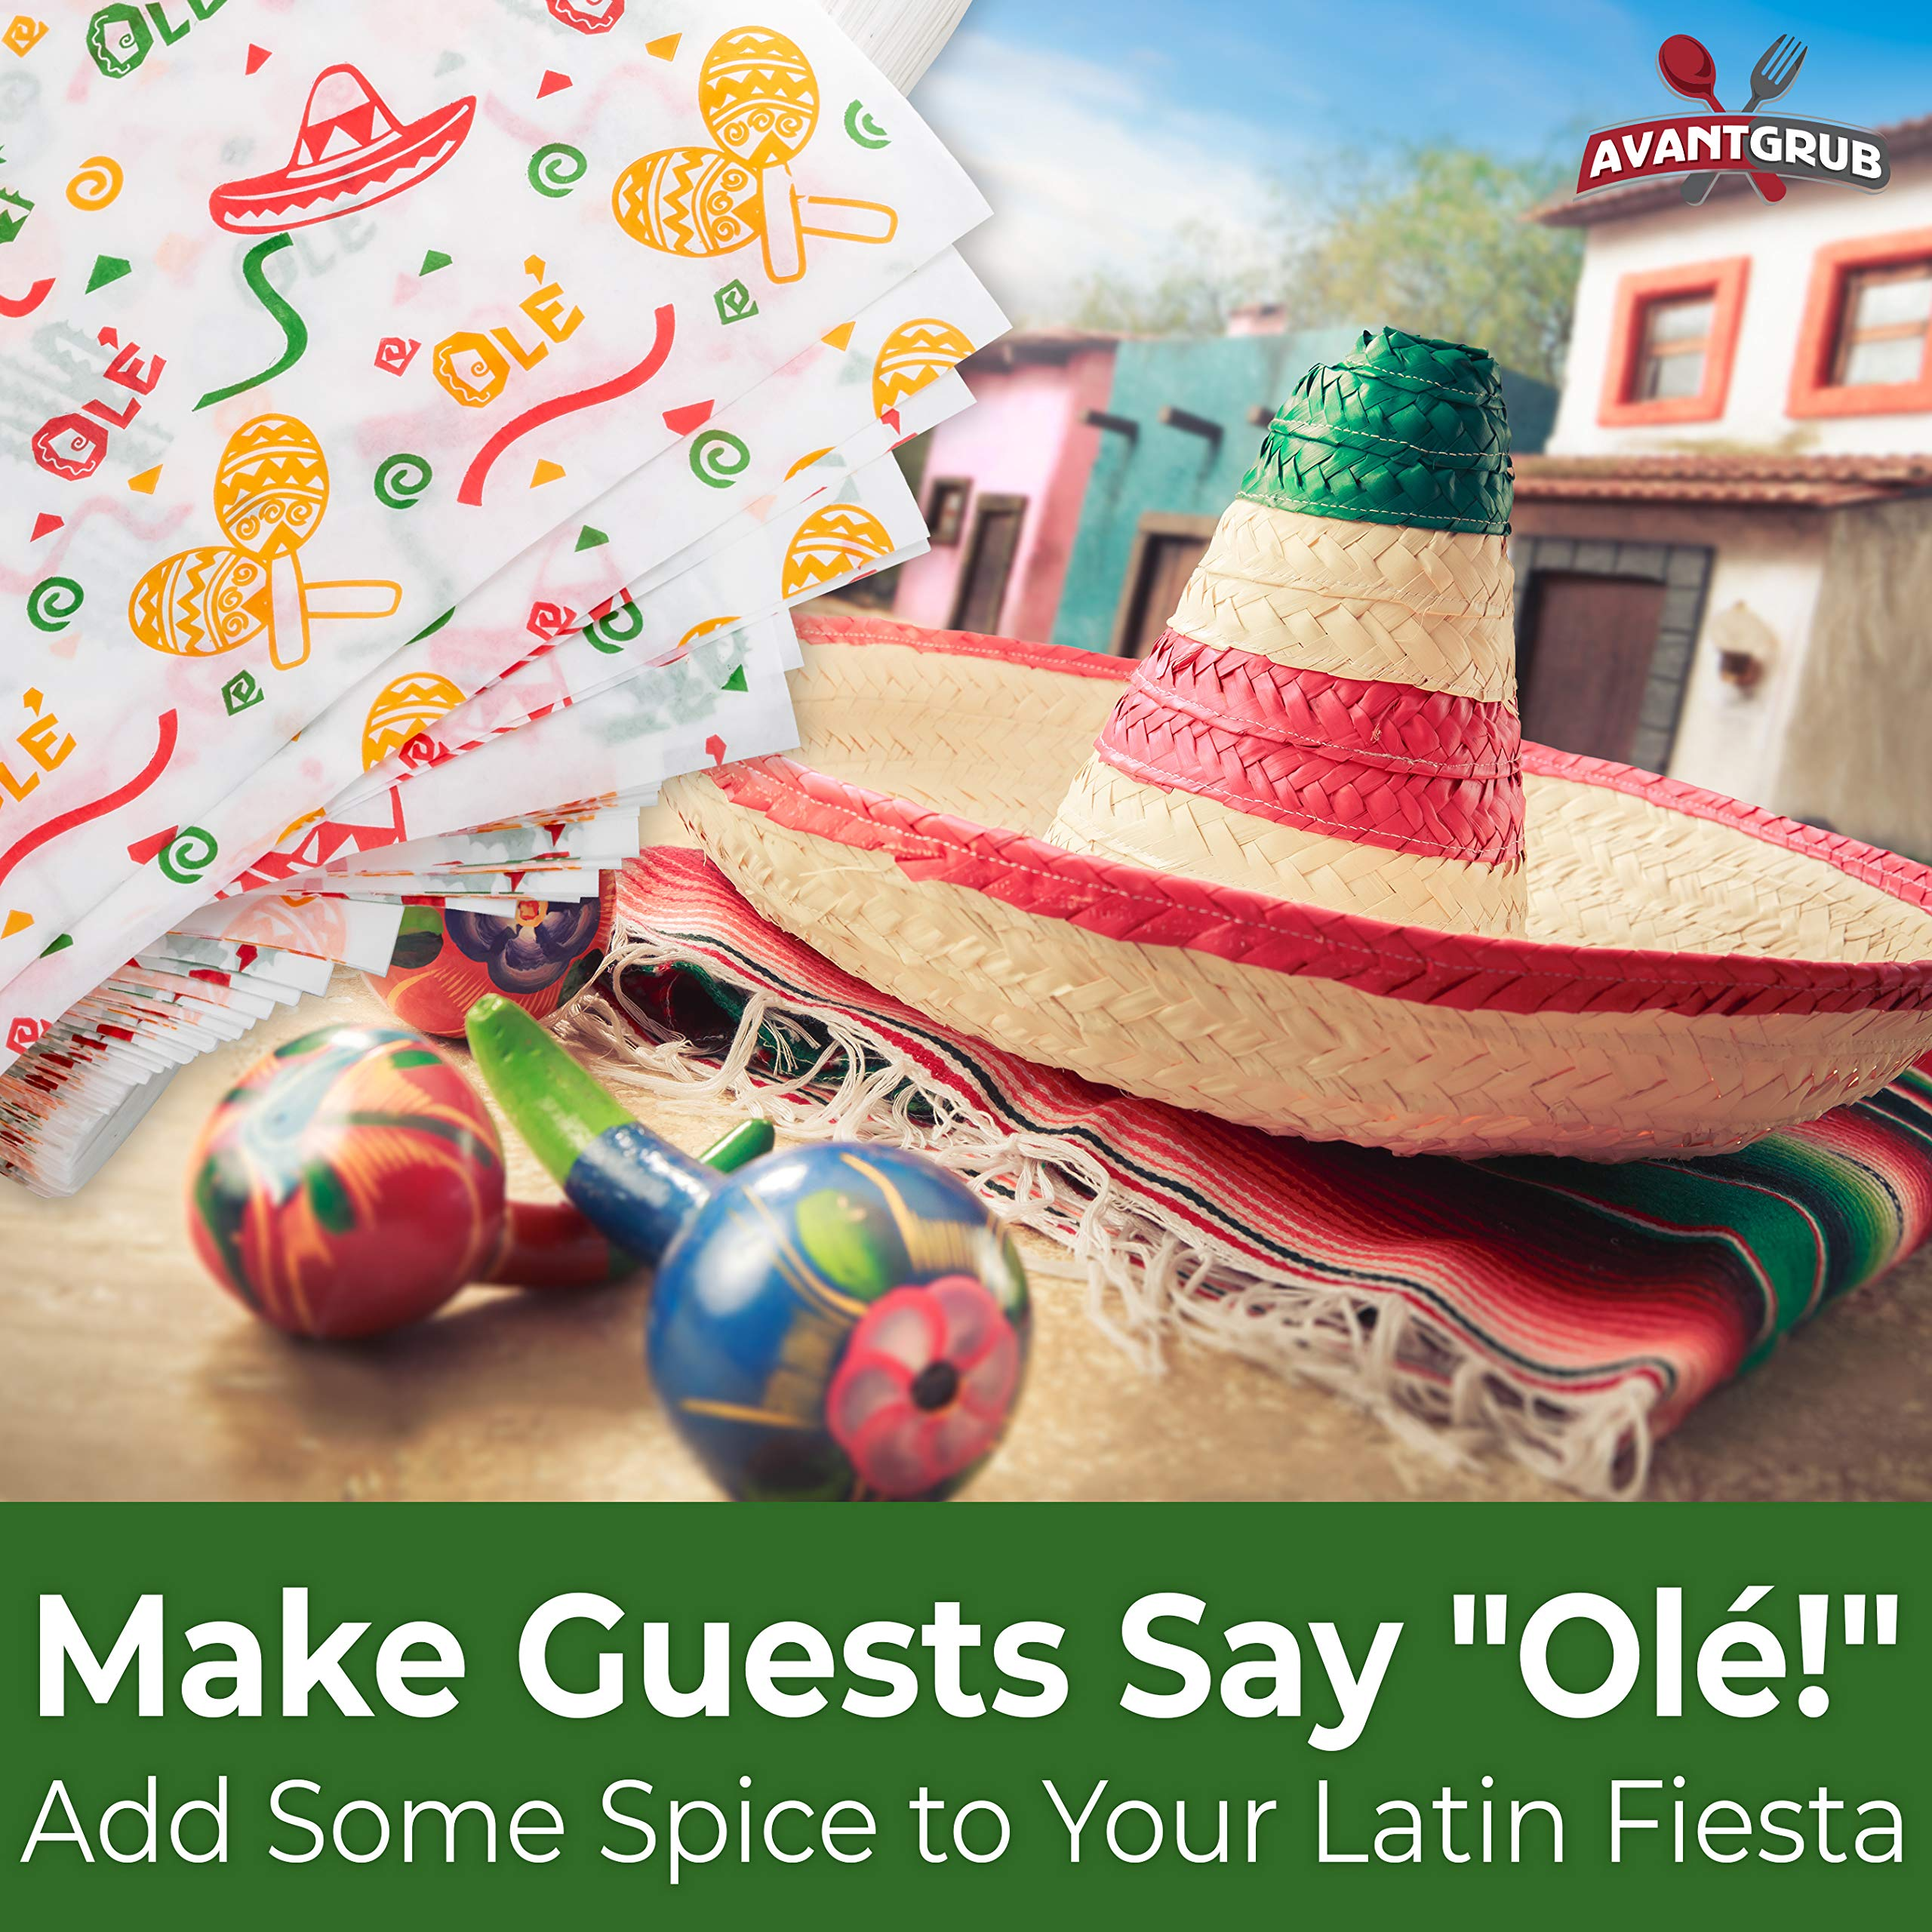 Fun, Fiesta Style 12in Deli Paper 1000 Ct. Greaseproof, Microwave-Safe Mexican Themed Tissue Great for Burrito Wrappers or Nacho Basket Liners. Southwest Party Supplies for Cinco de Mayo Celebration by Avant Grub (Image #4)